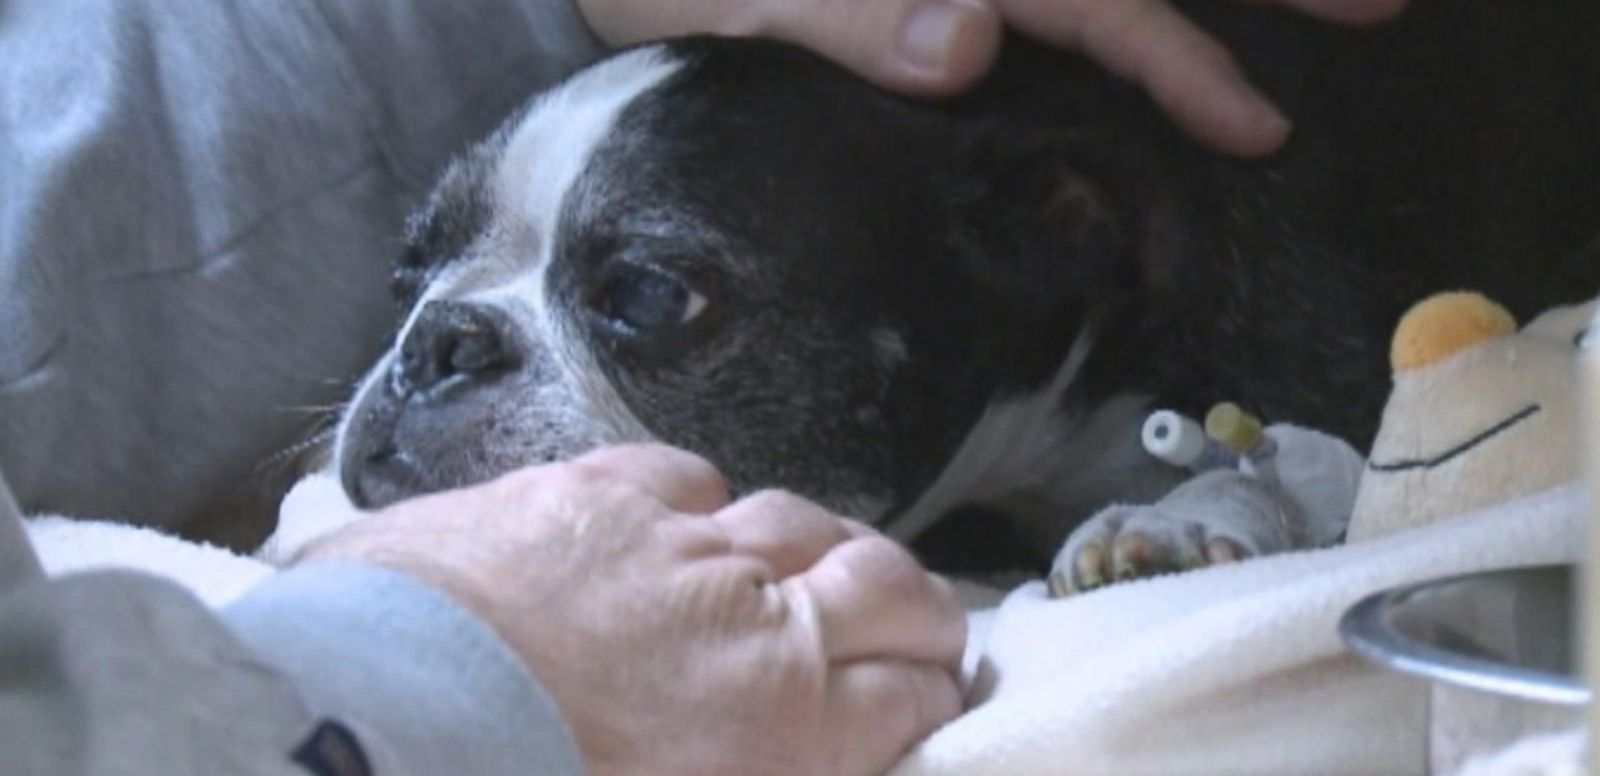 VIDEO: Sam, a 13-year-old Boston terrier, landed in a hot tub after falling from his owner's balcony.